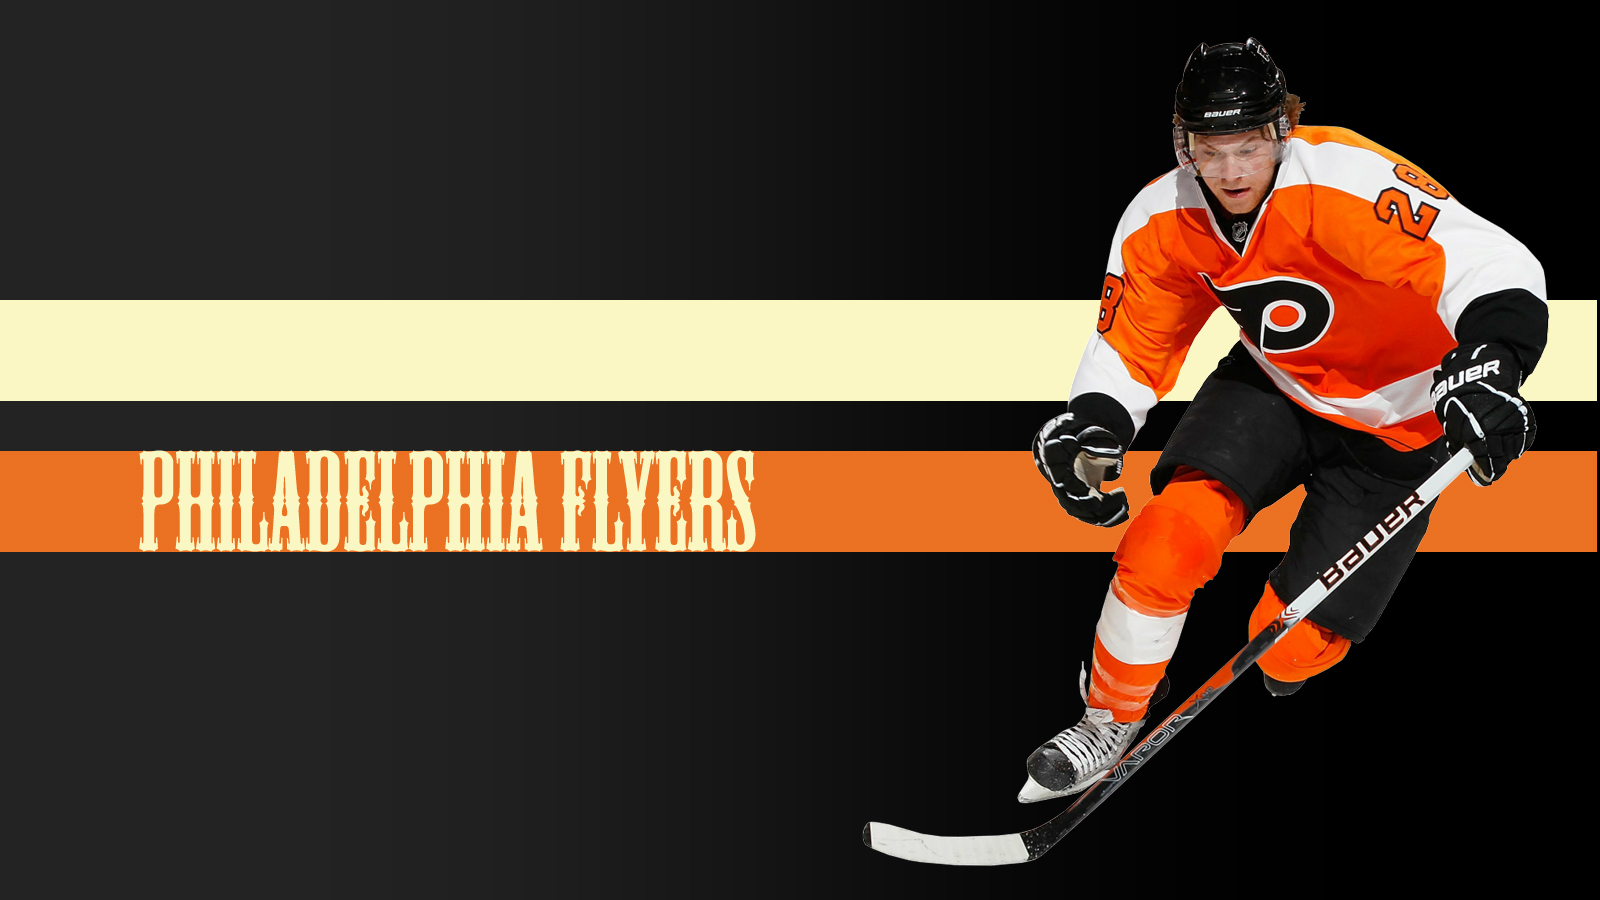 NHL Wallpaper Flyers Hd 1600x900